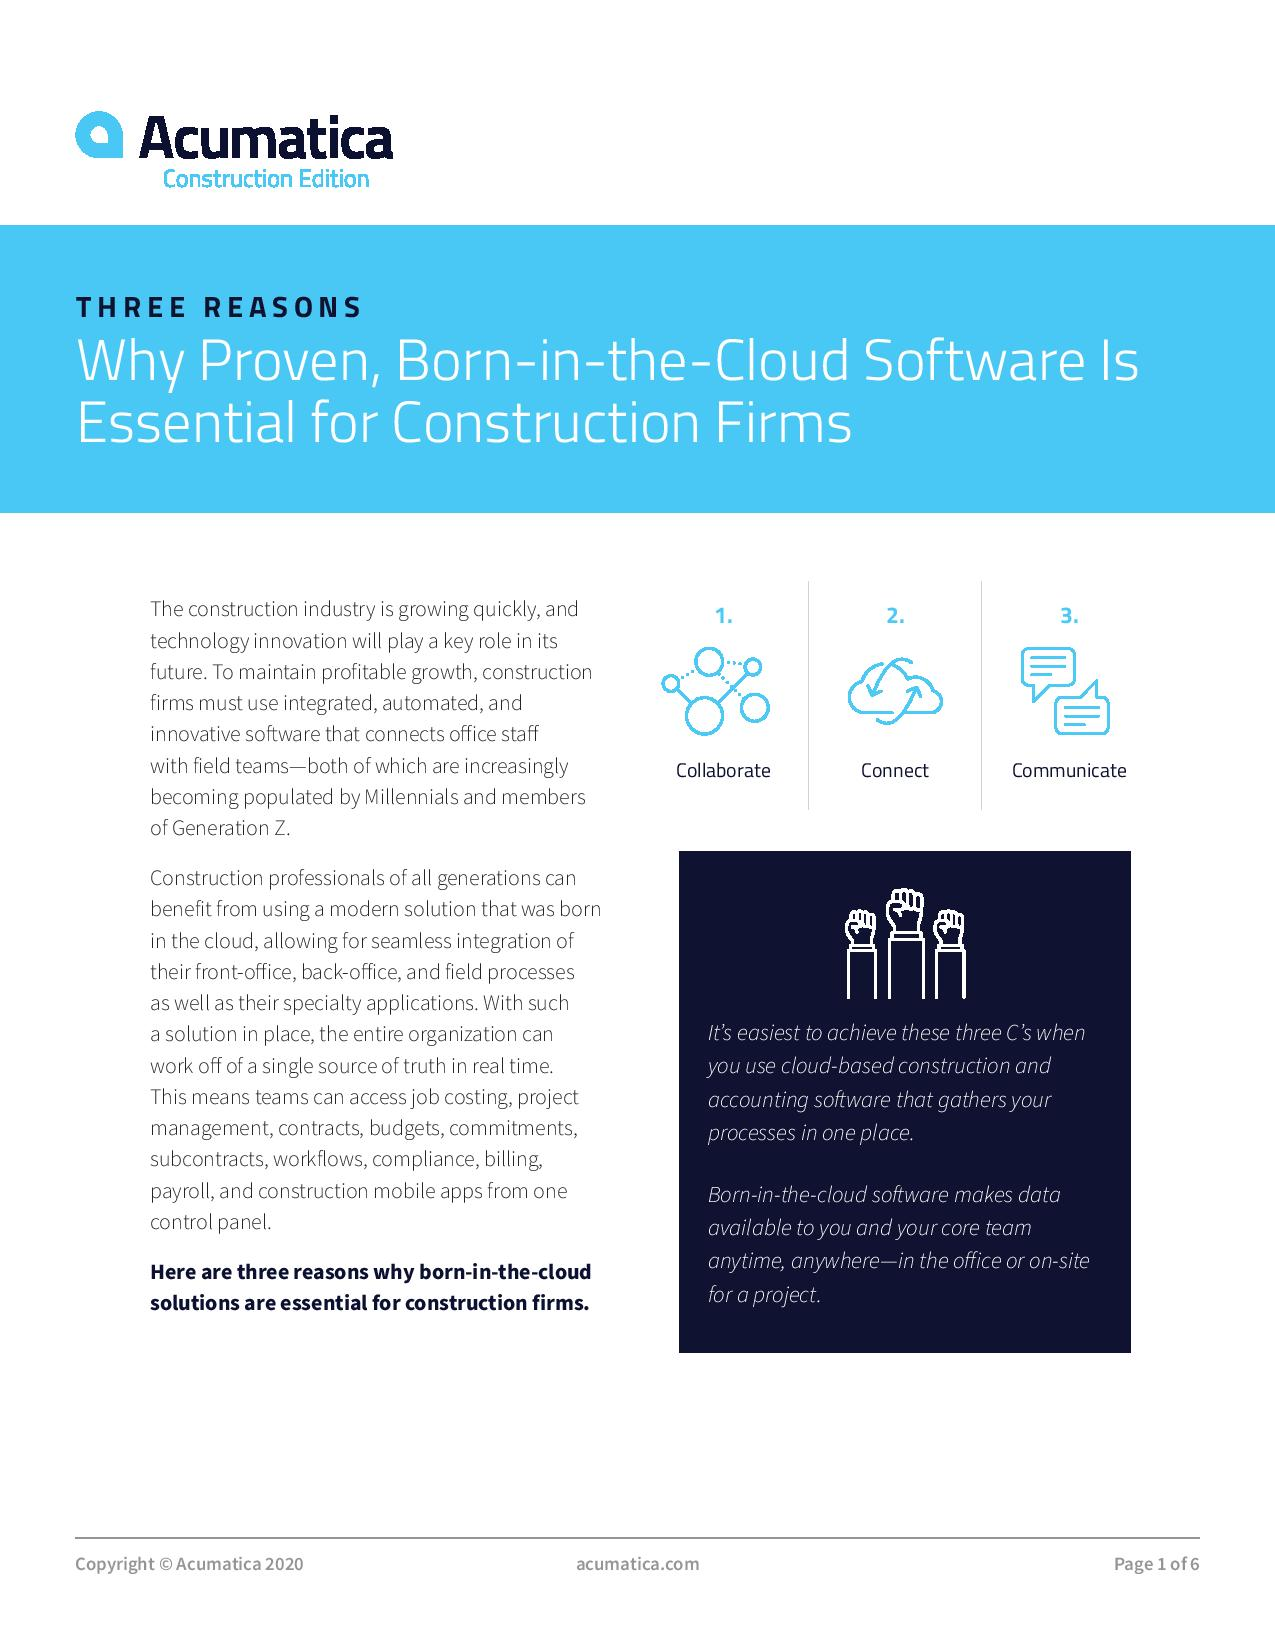 Construction Accounting Software: Why Move to the Cloud?, page 0